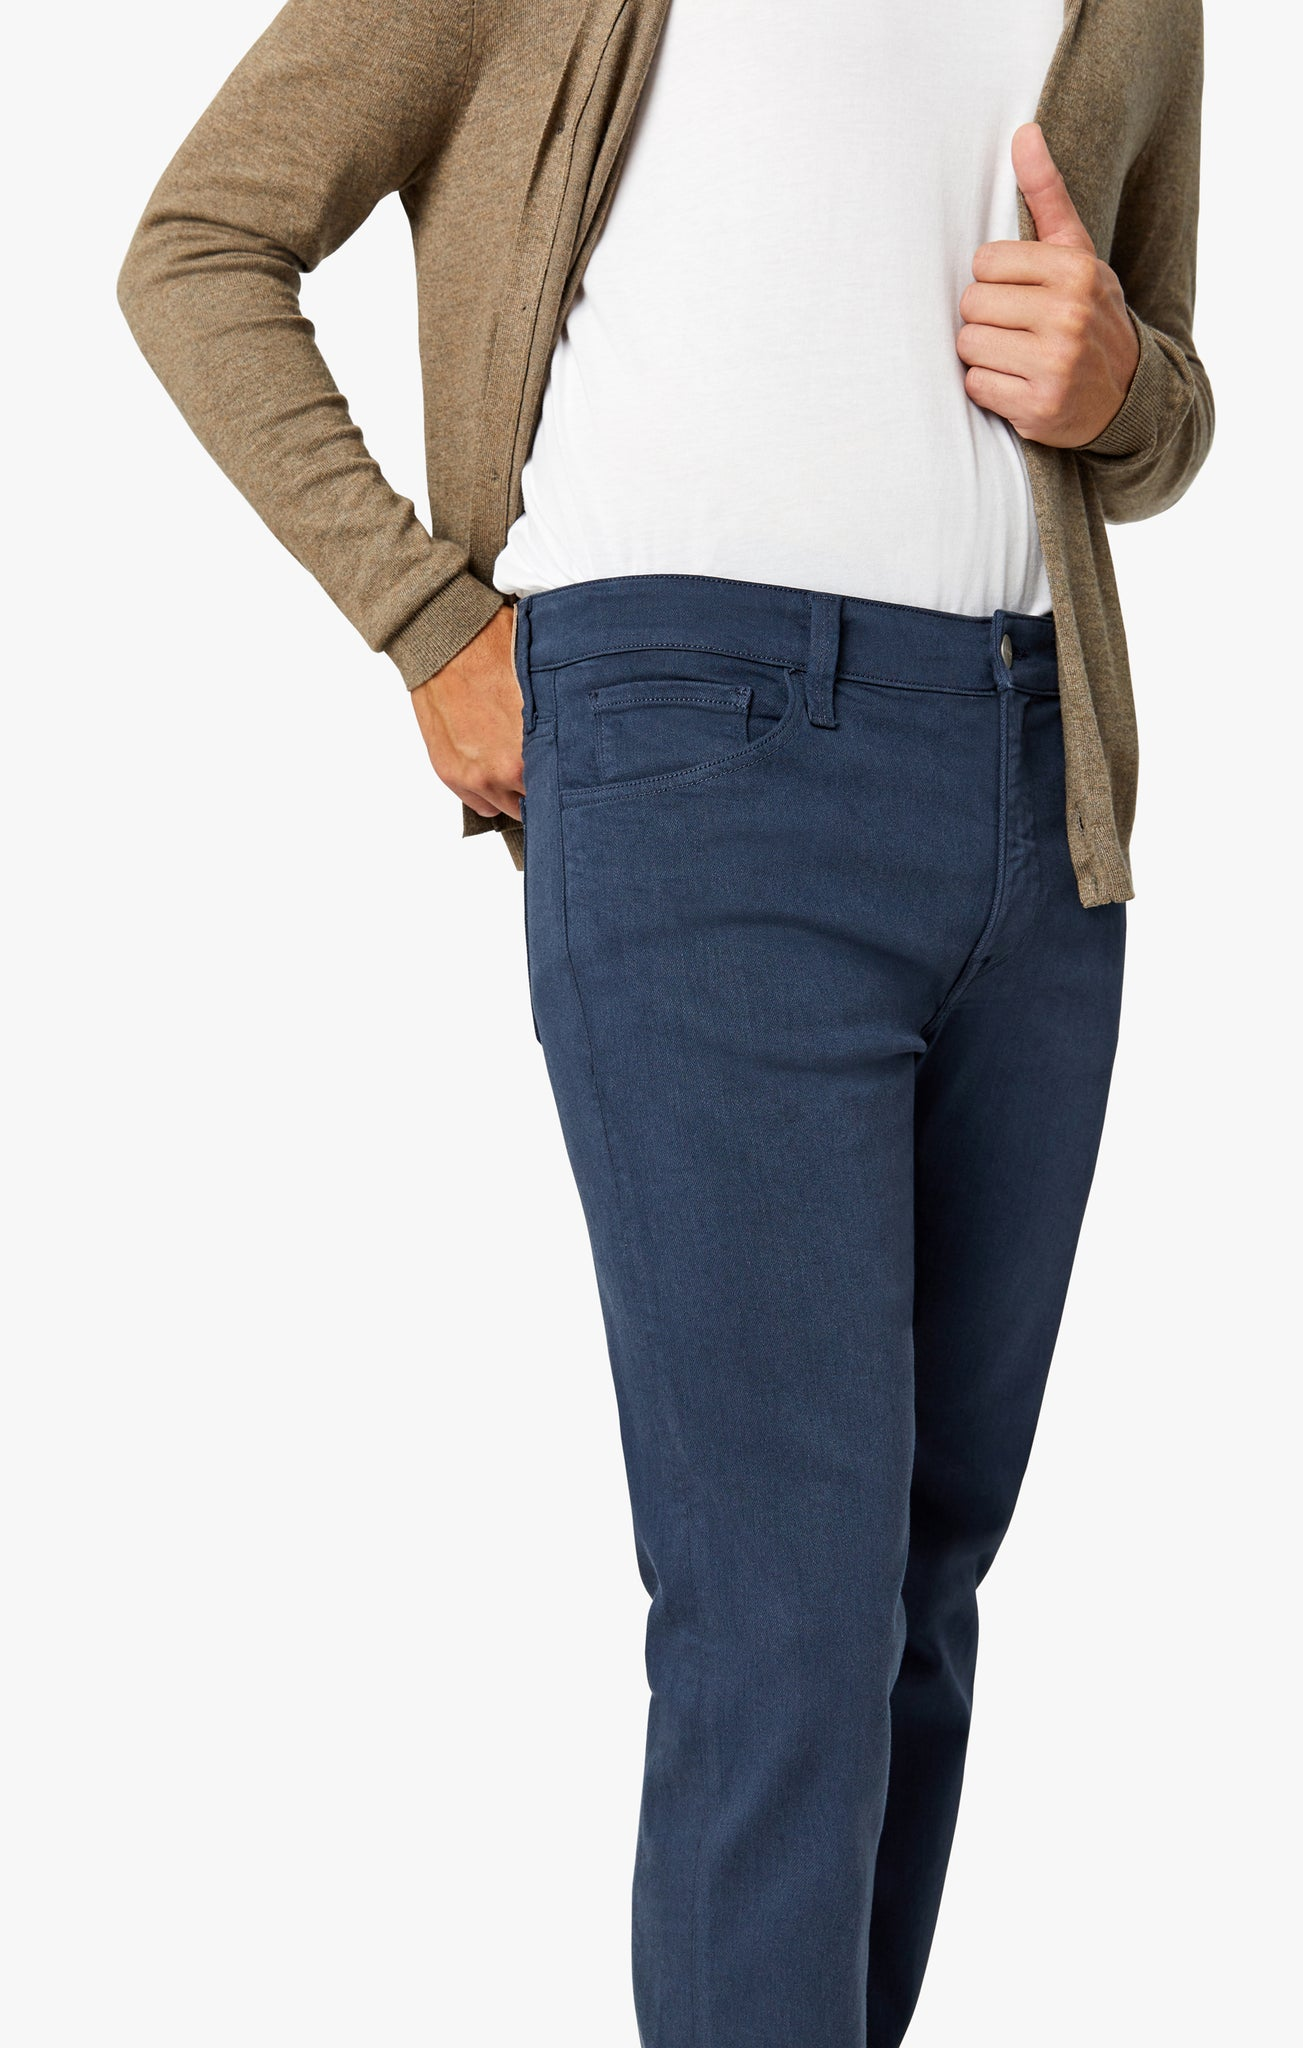 Courage Straight Leg Pants in Dusty Navy Comfort